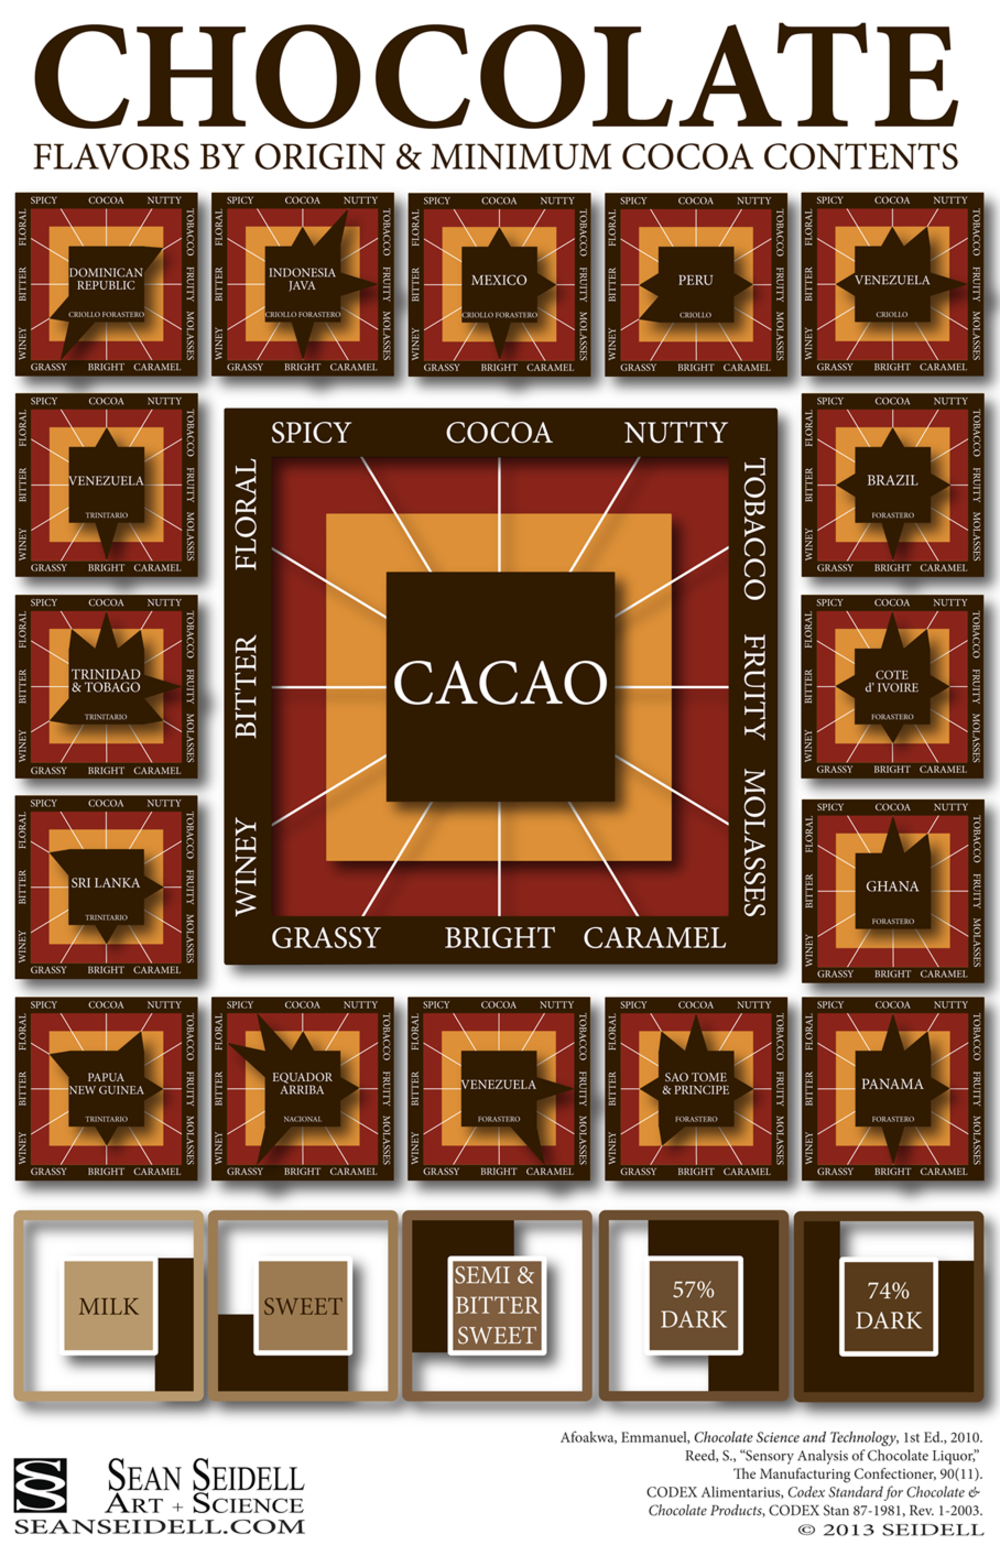 Savory Chocolate Flavor Profiles